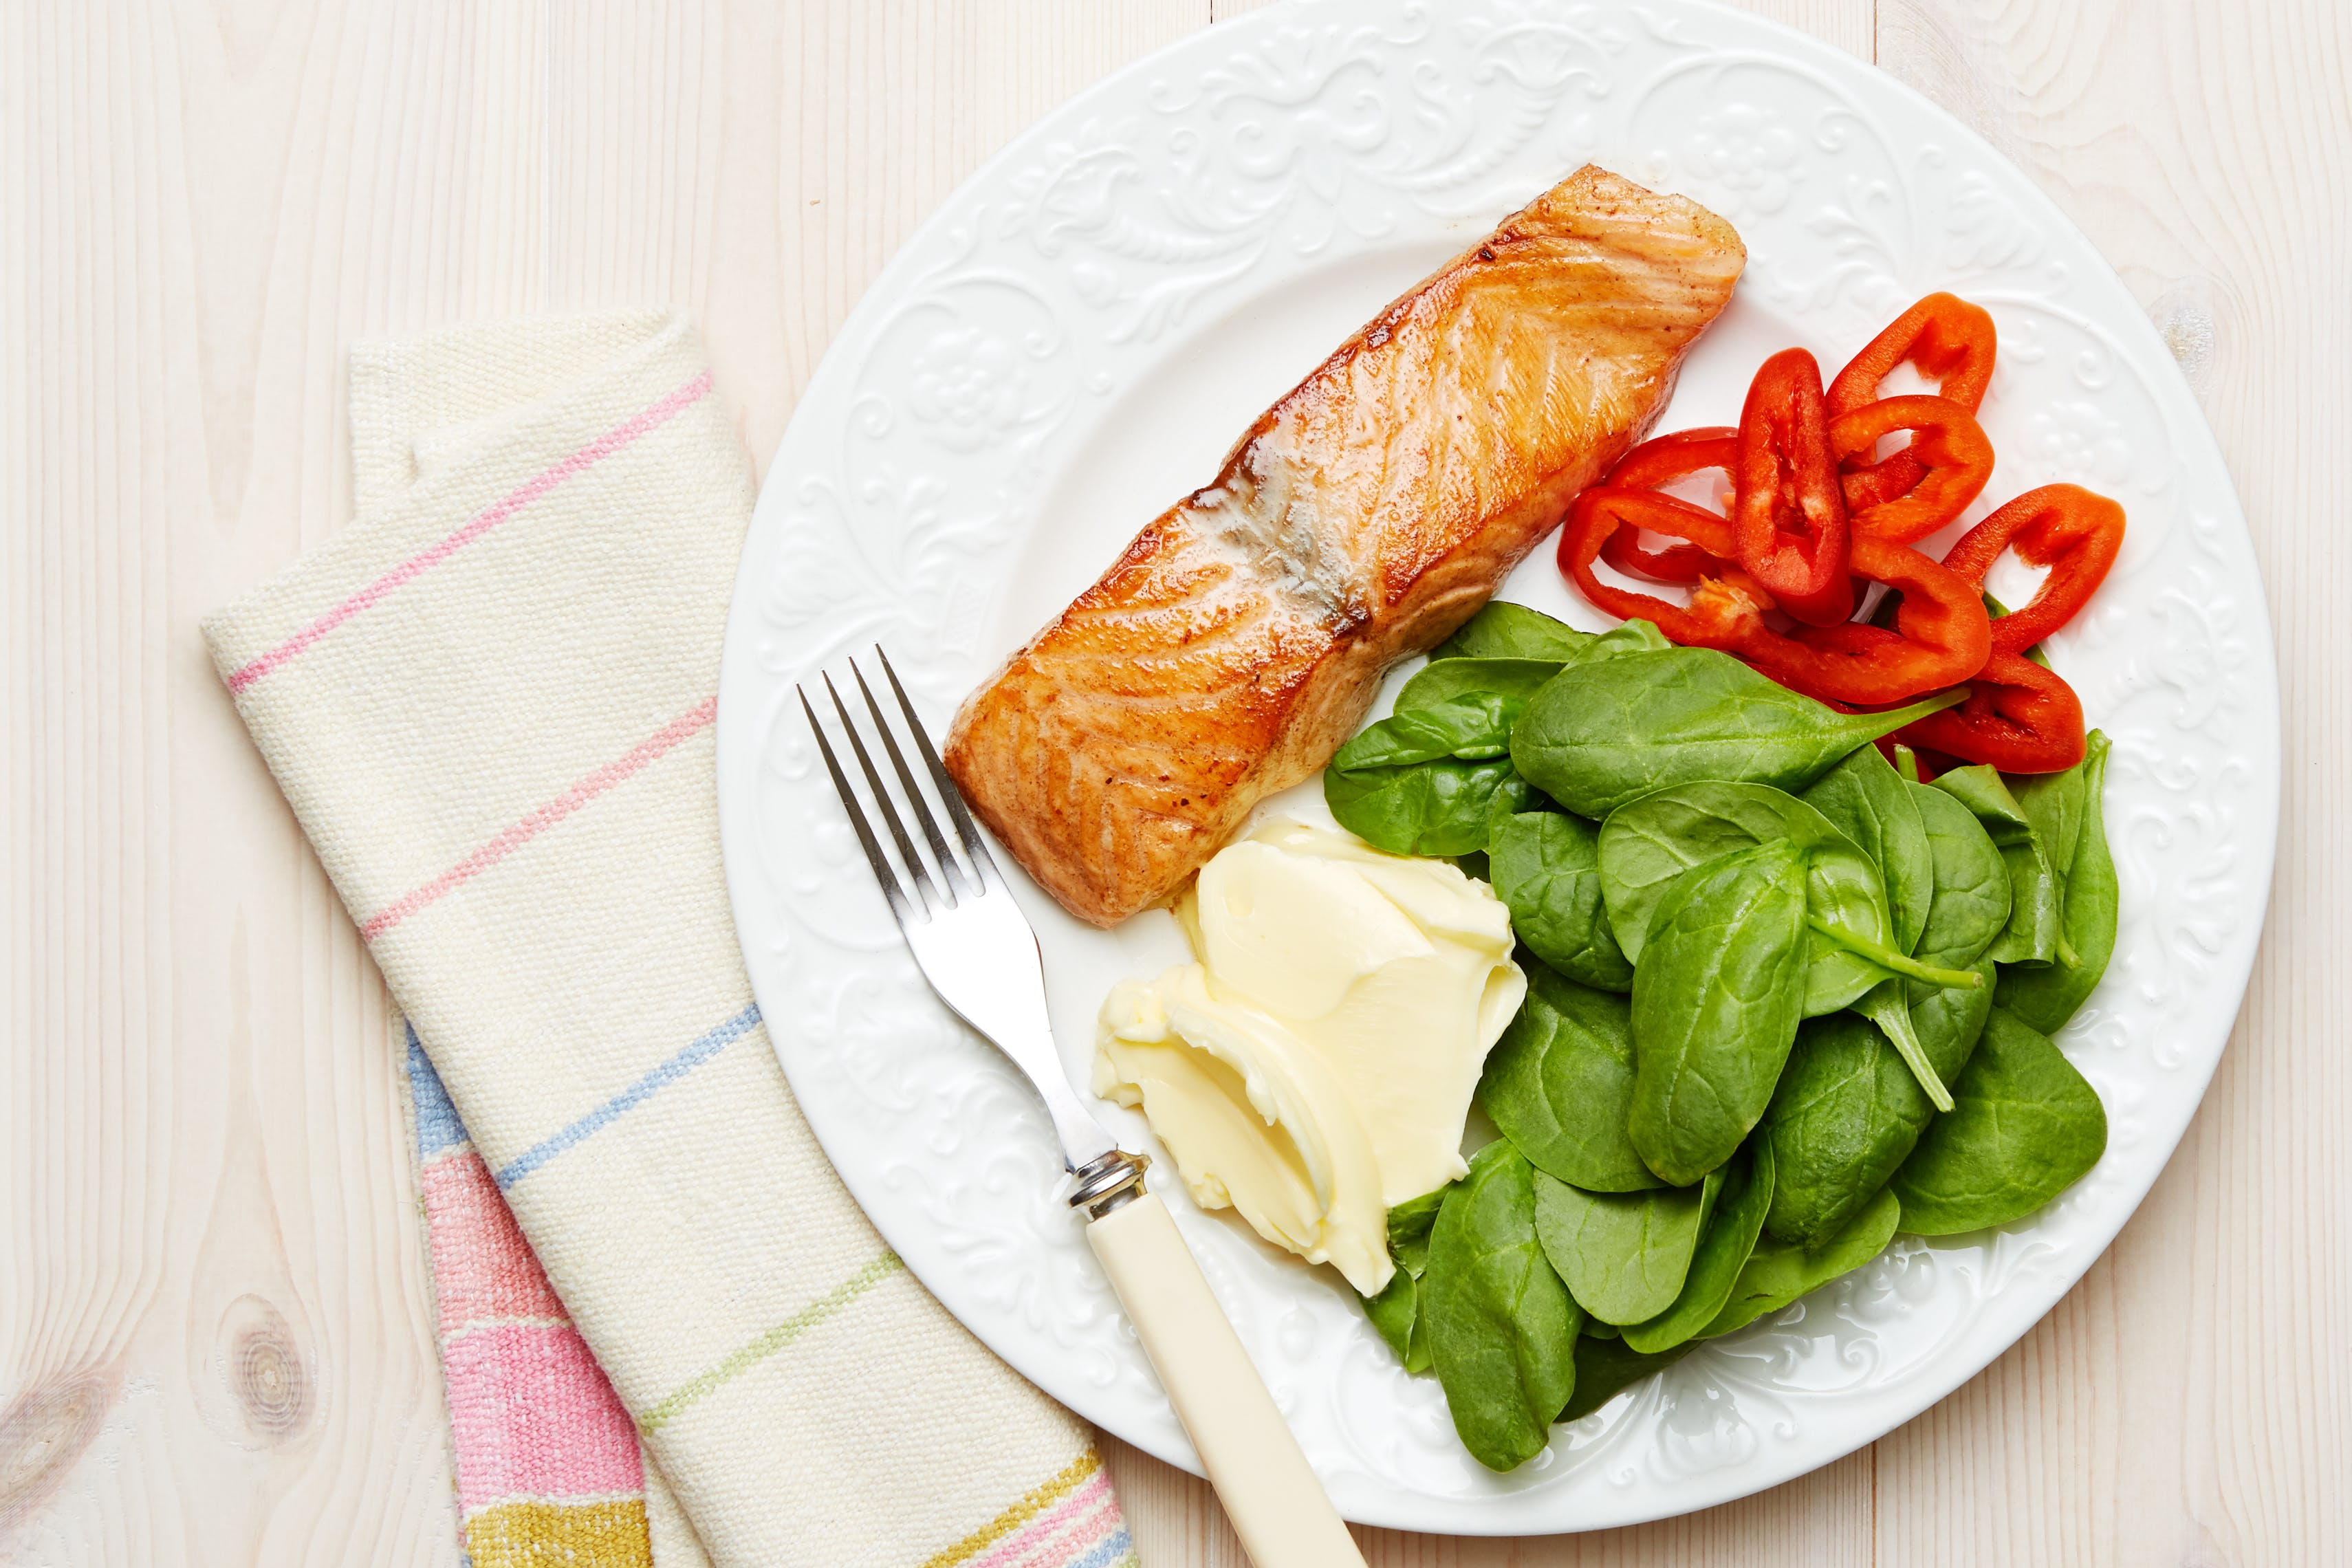 Quick keto meals in 20 minutes or less